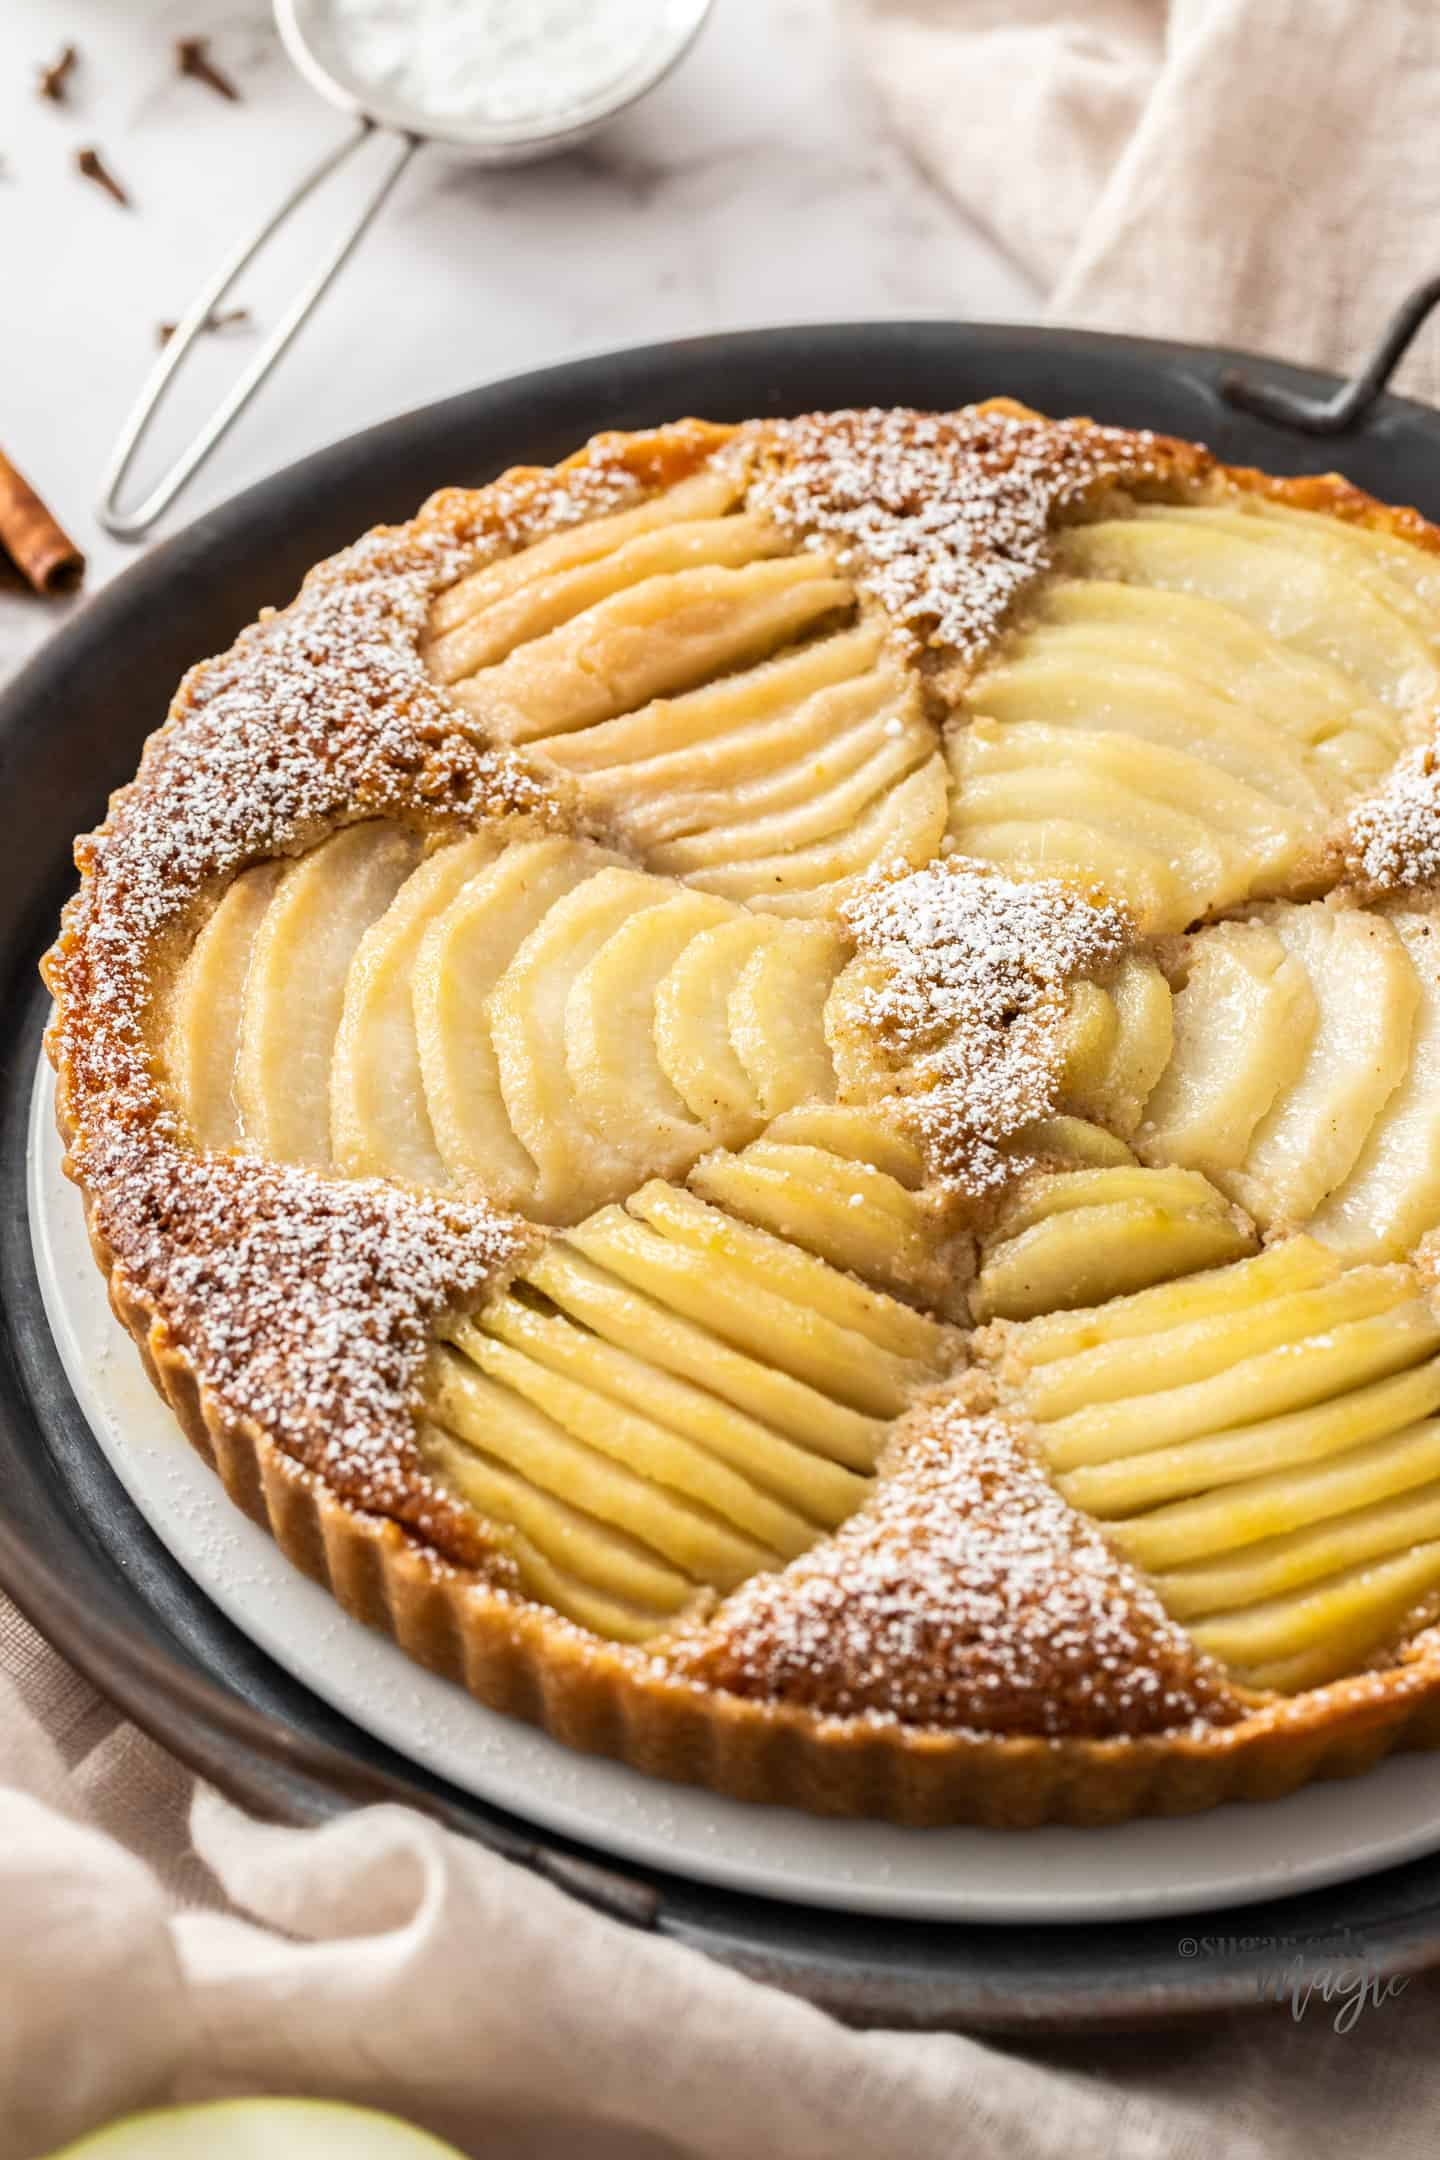 A tart filled with slices of pears on a white cake plate. A small sieve of icing sugar in the background.